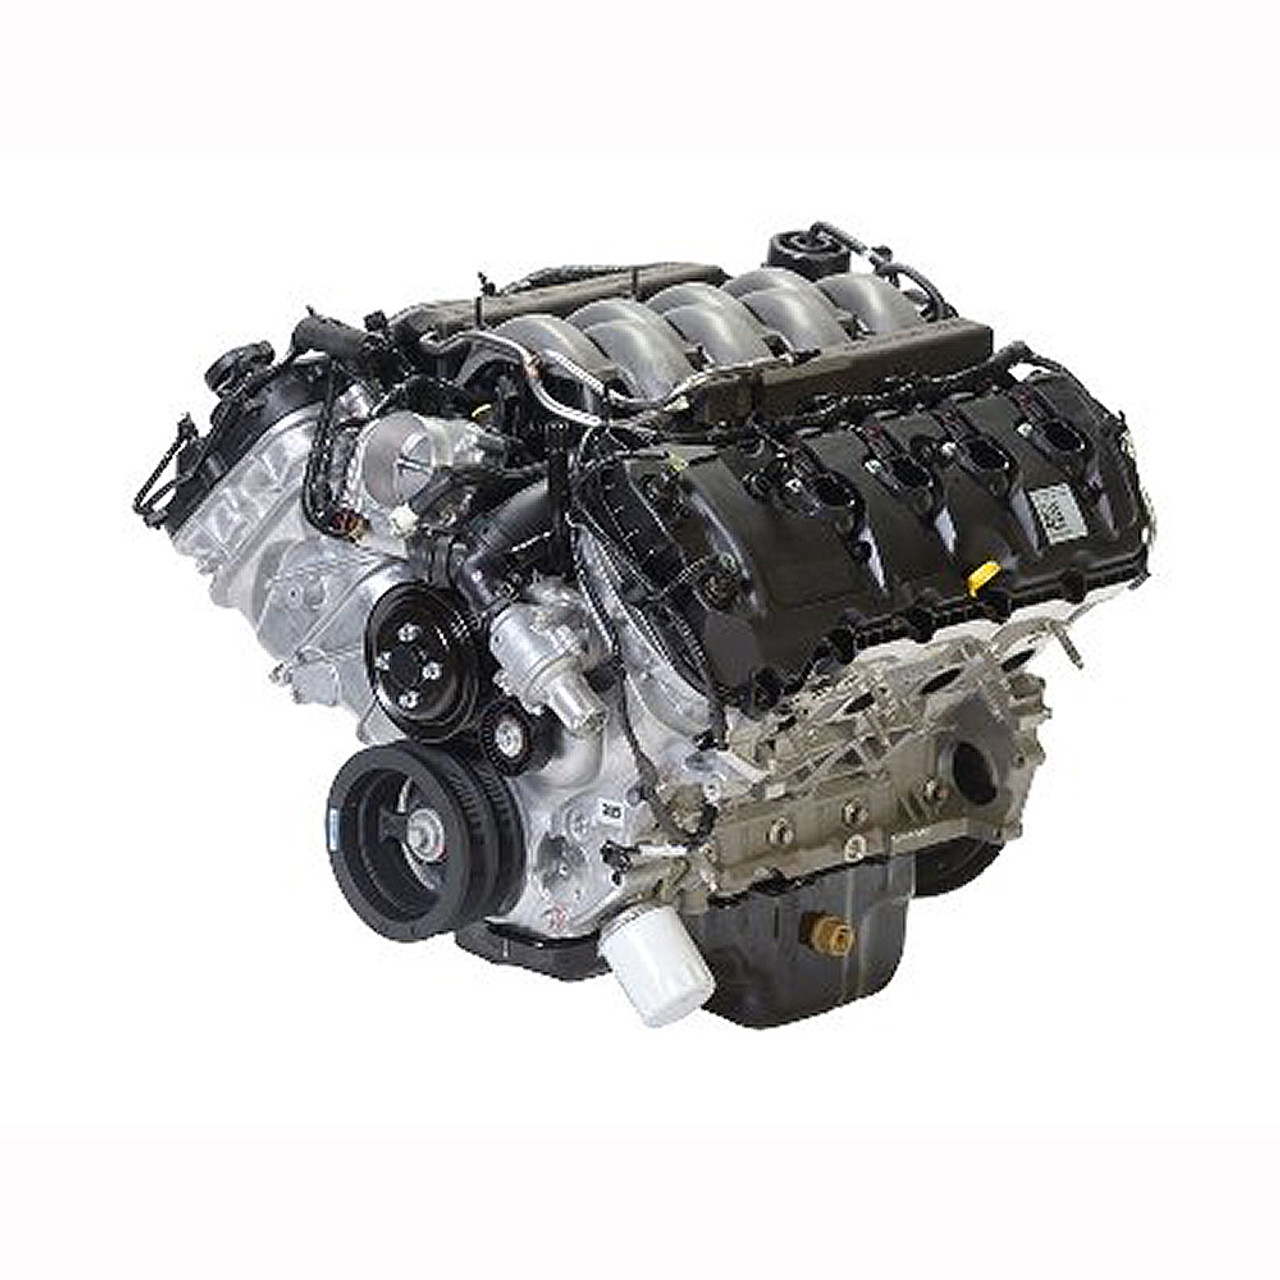 GEN 2 5 0L COYOTE 435 HP MUSTANG CRATE ENGINE - Herrod